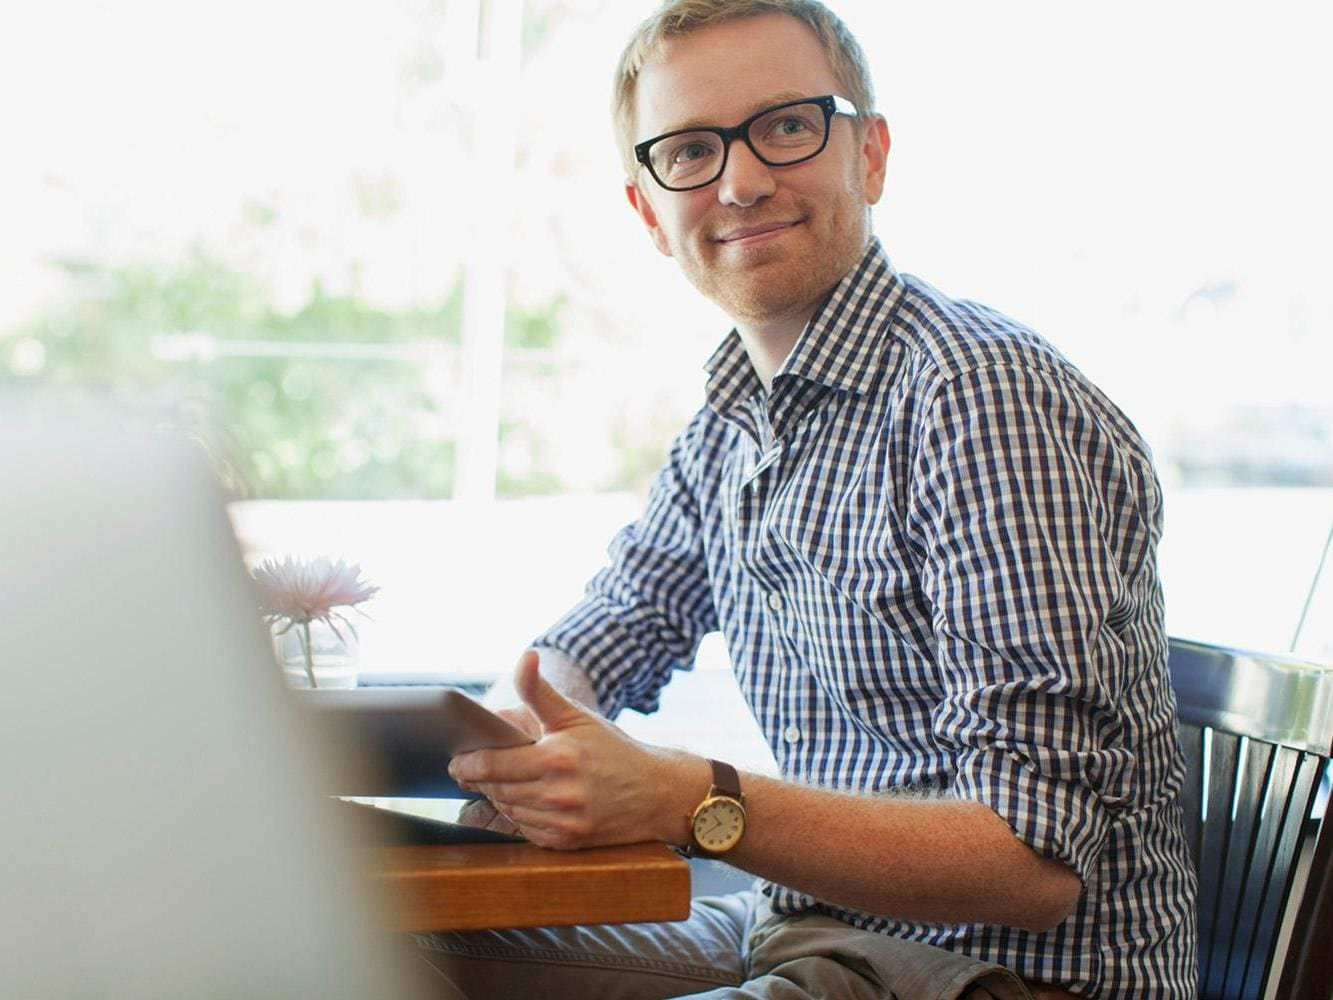 Man smiling towards camera and working on tablet